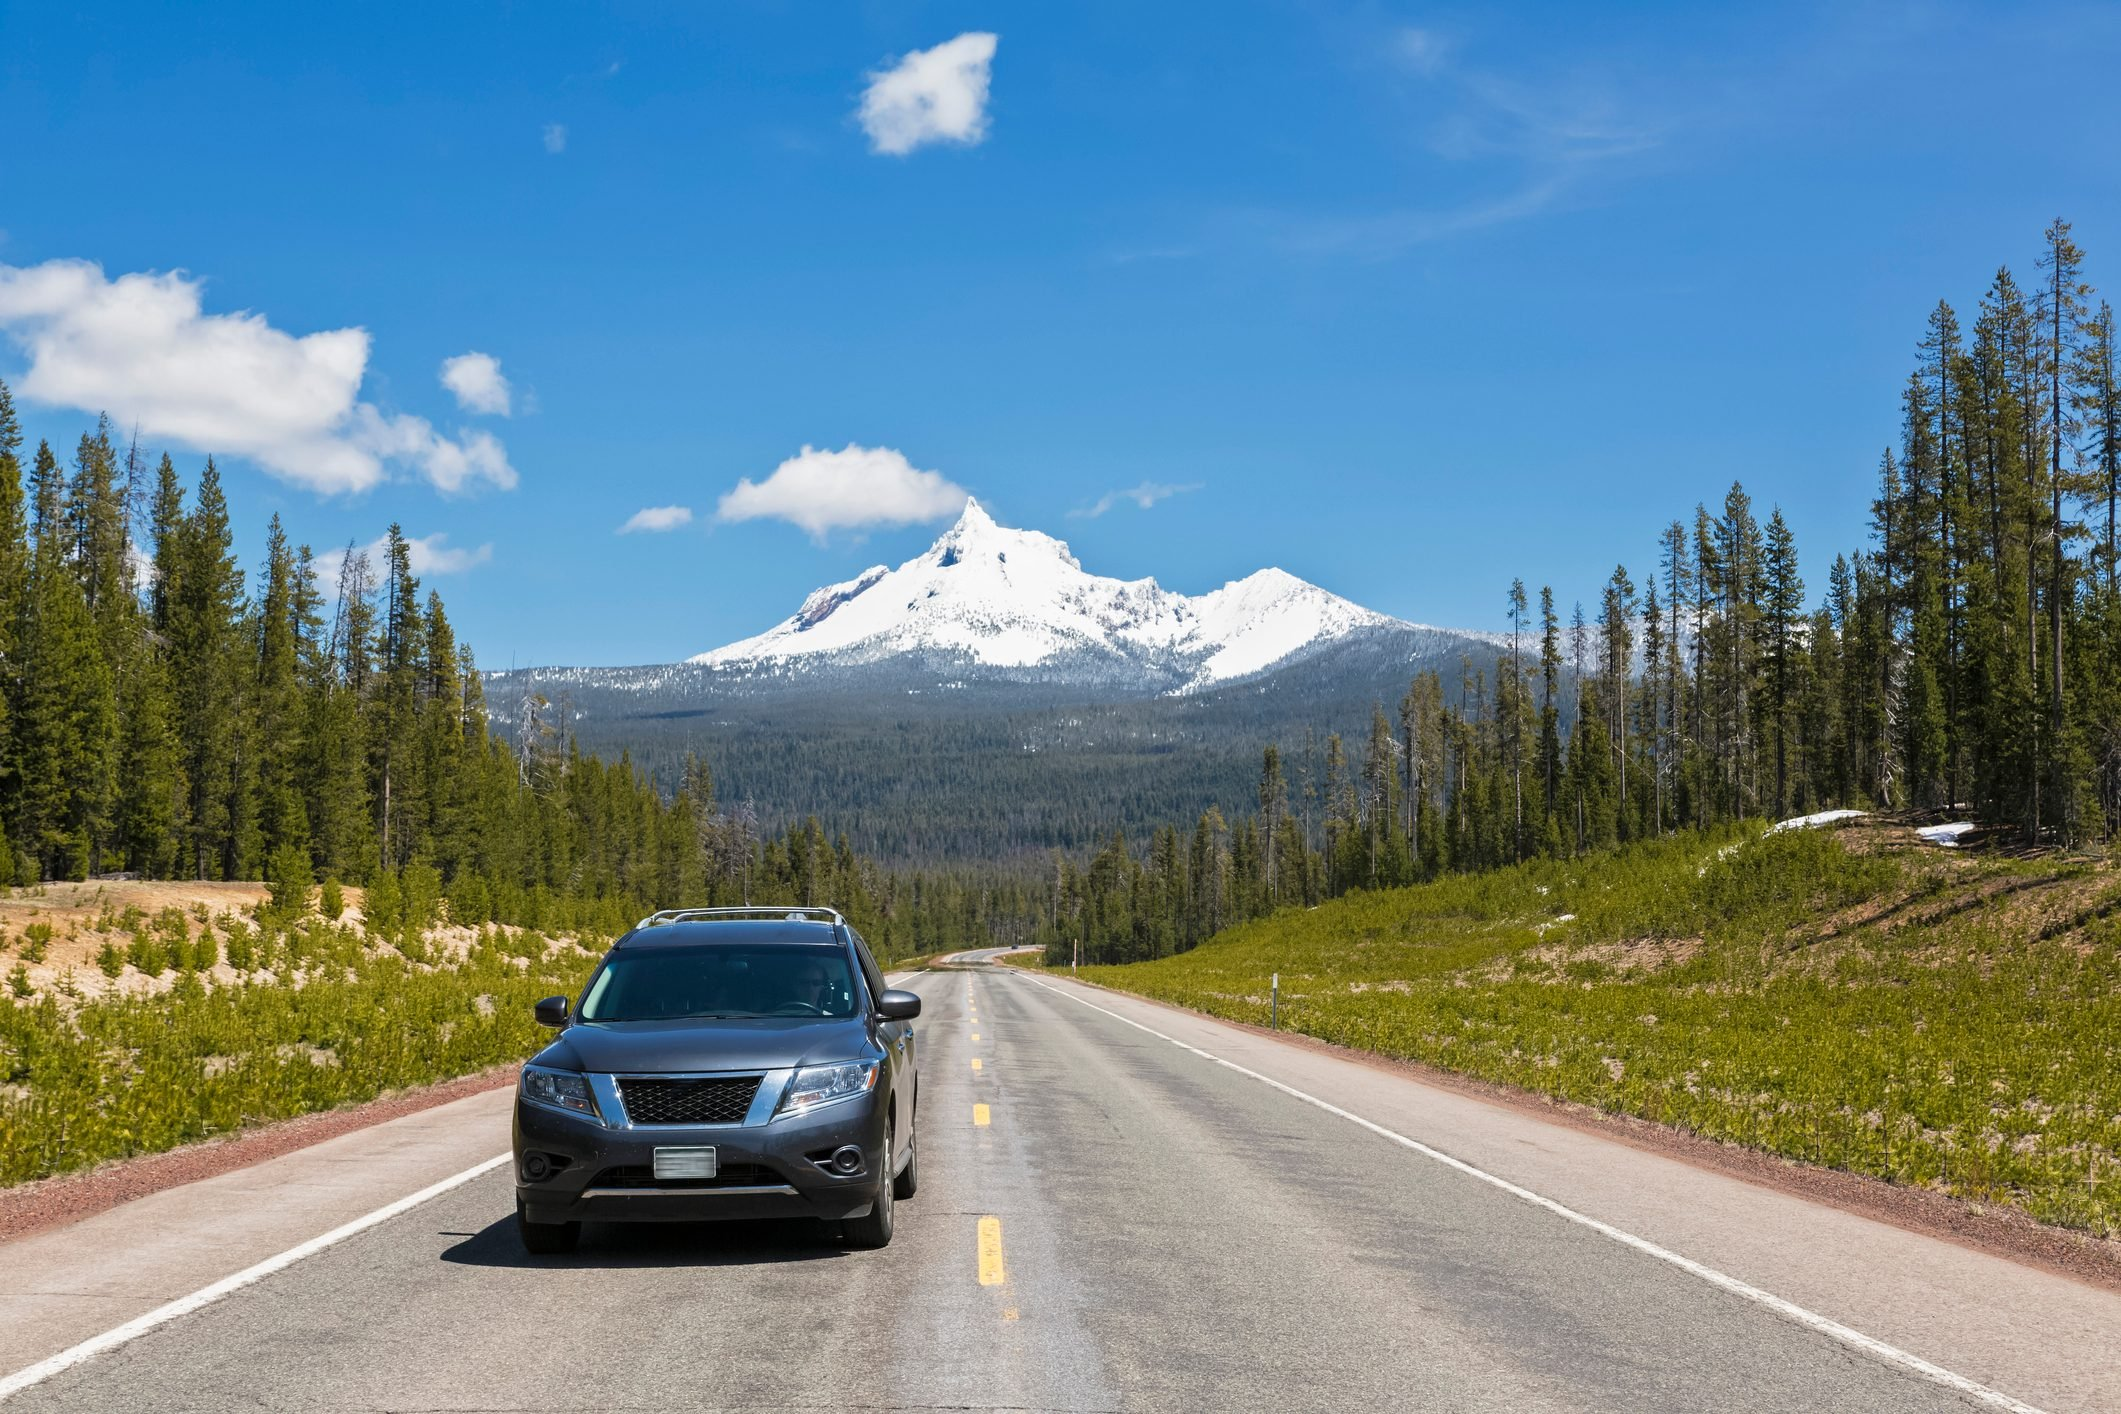 USA, Oregon, Diamond Lake Highway, Mount Thielsen